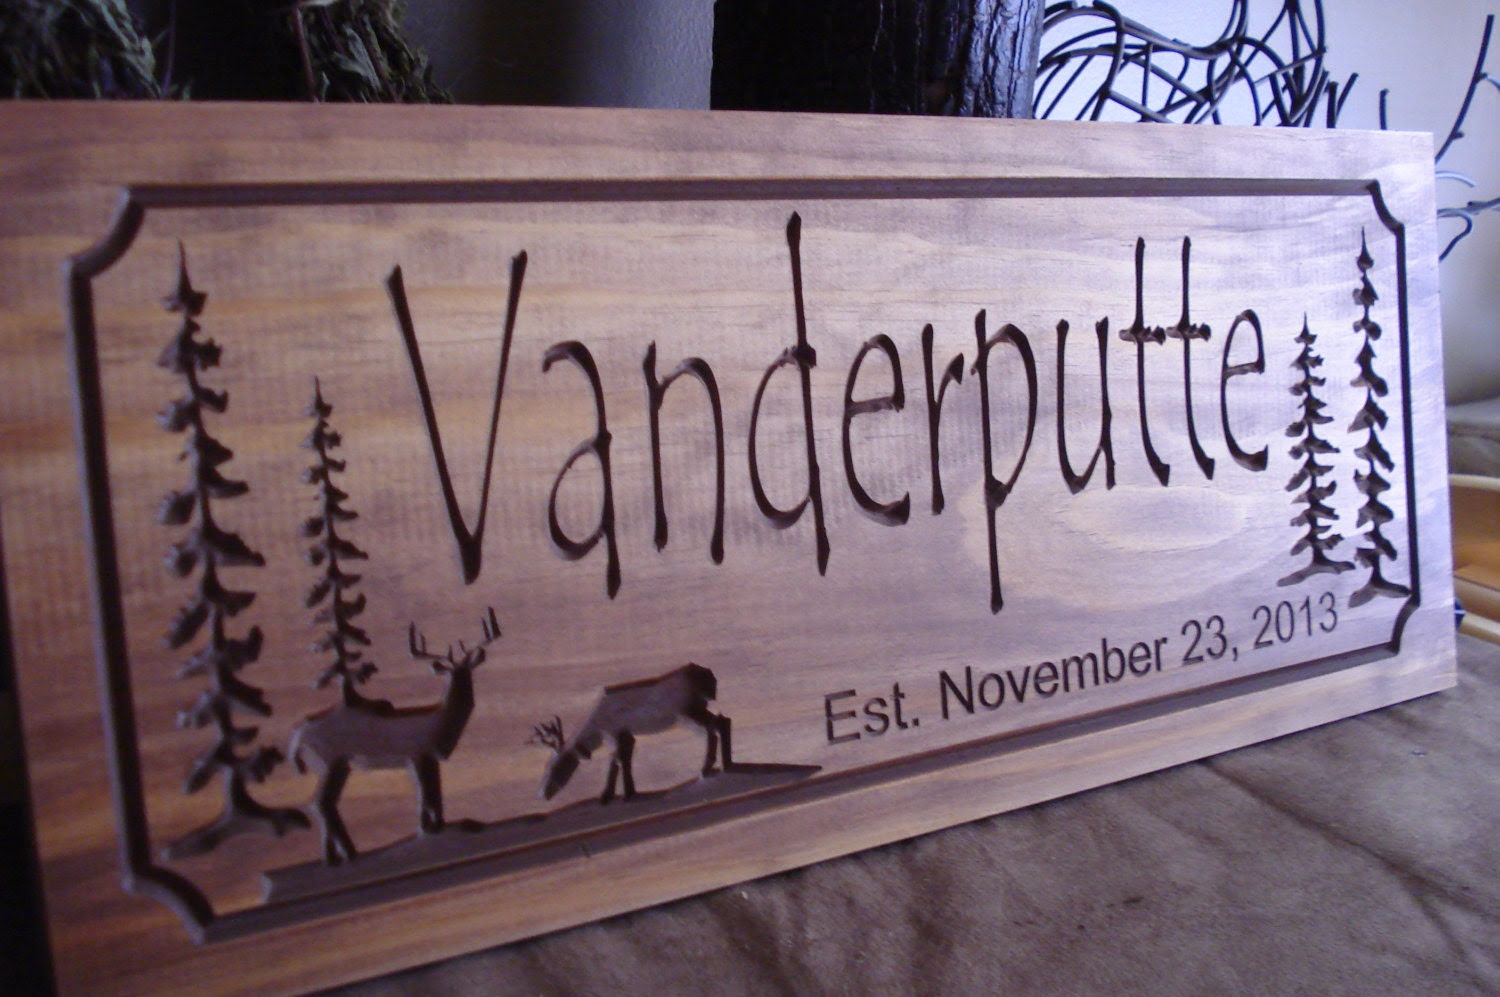 signs canada  Signs Family Name  Tree Welcome rustic Pine Last Personalized Cabin Rustic